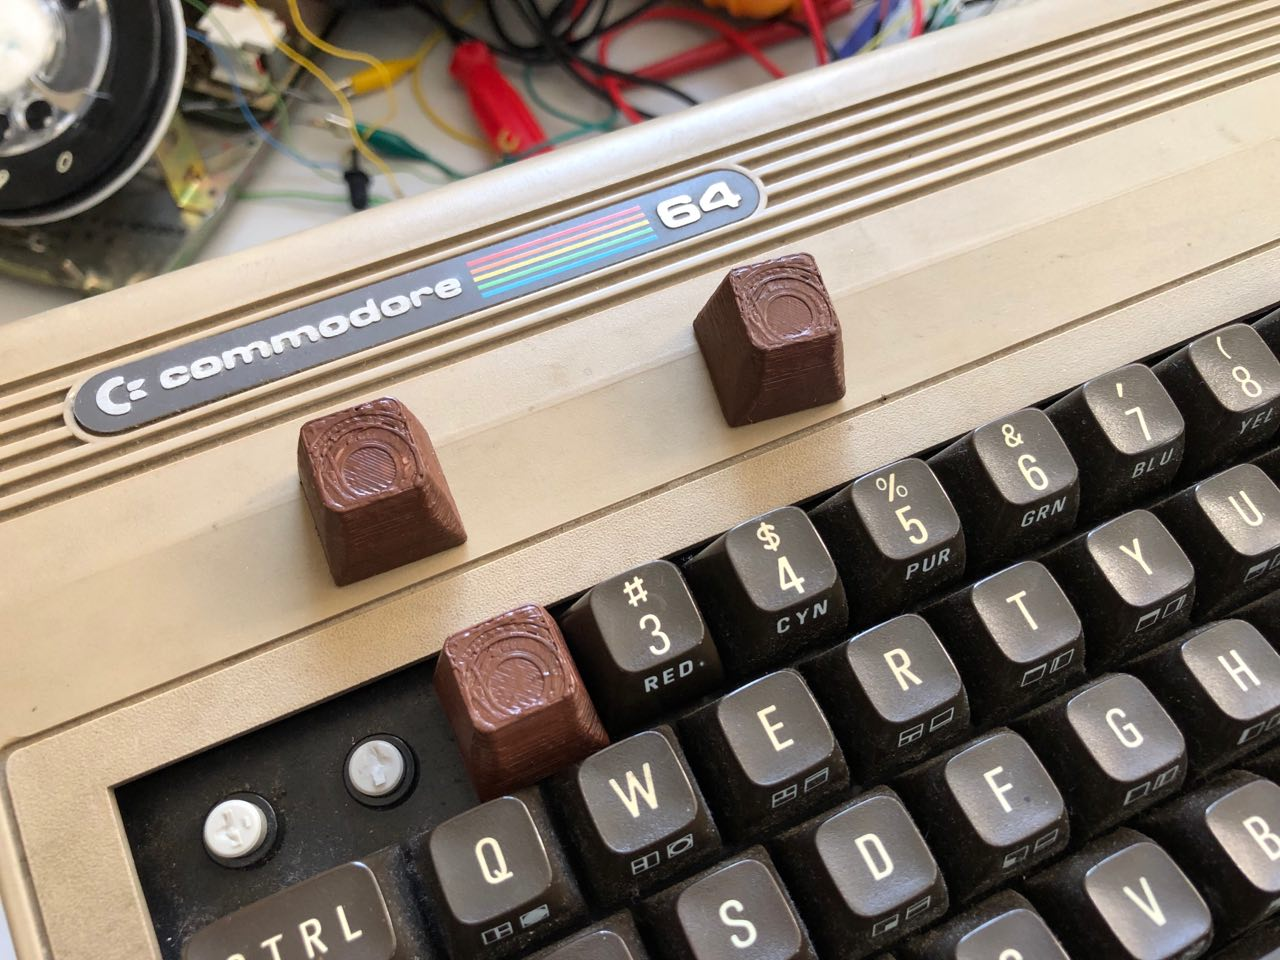 3D printed key for Commodore 64